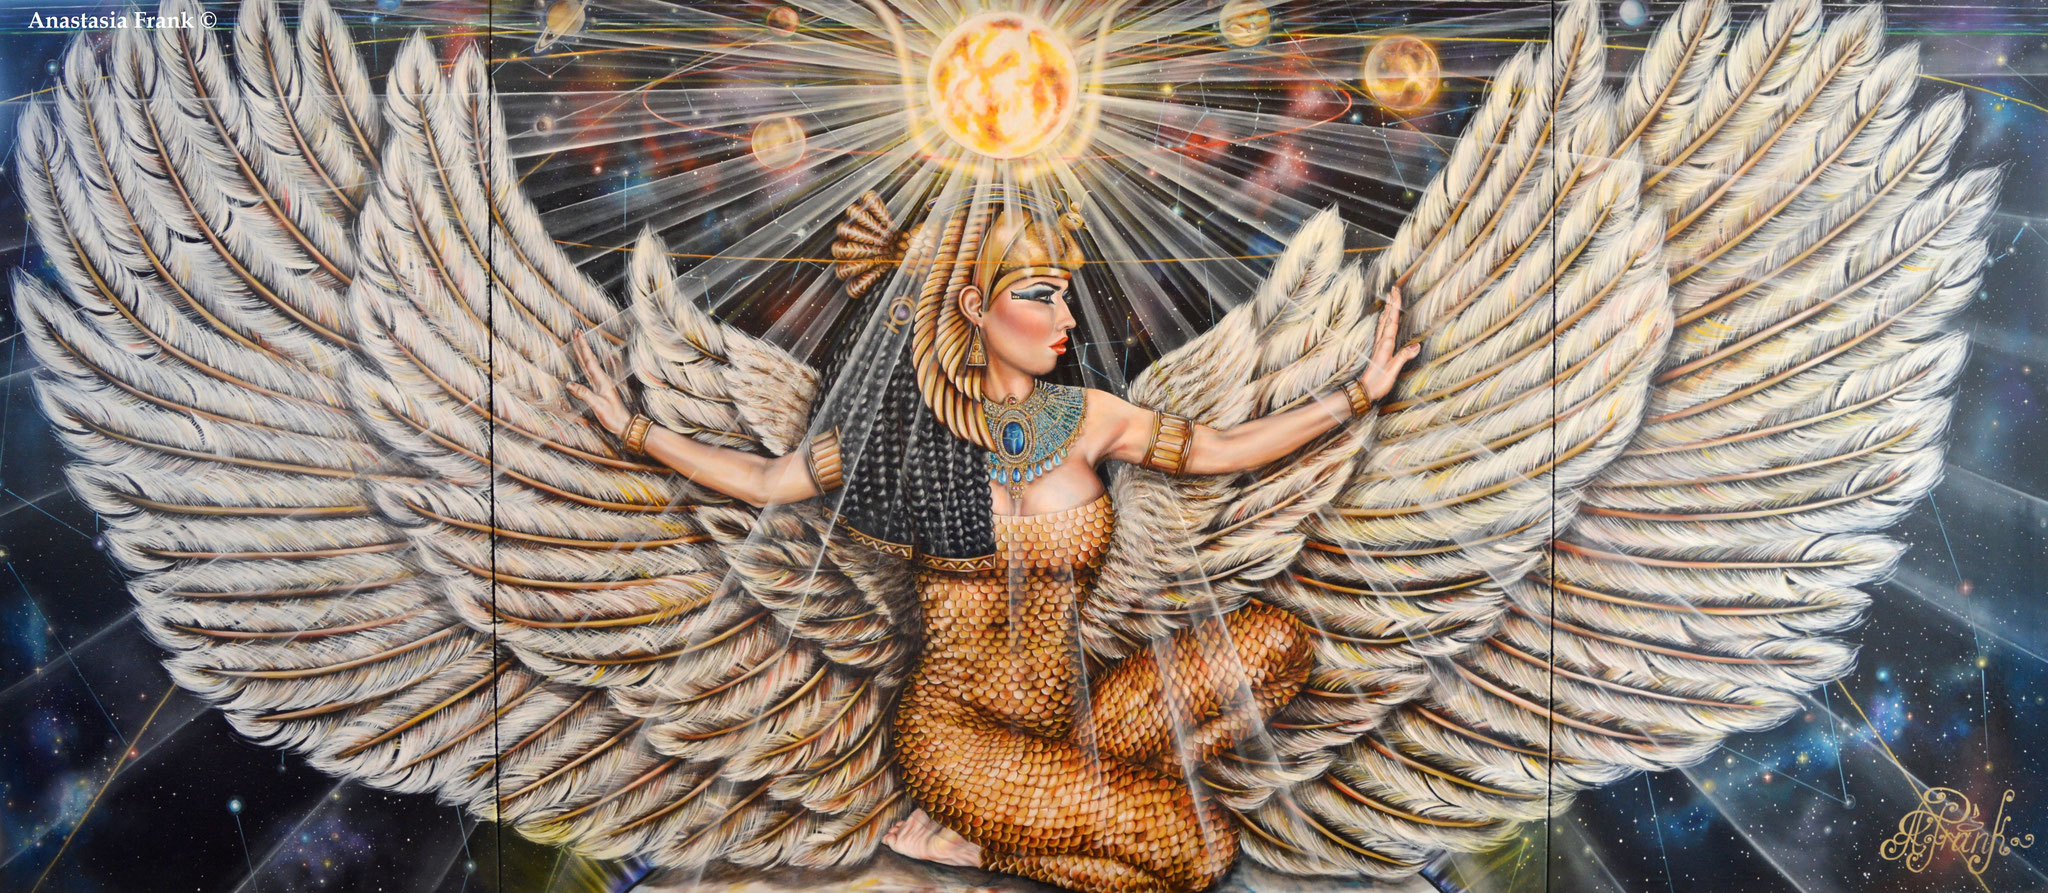 """""""The Mother of the Pharaohs or Goddess Isis"""", 320 x 120 cm, oil on canvas (2016)"""